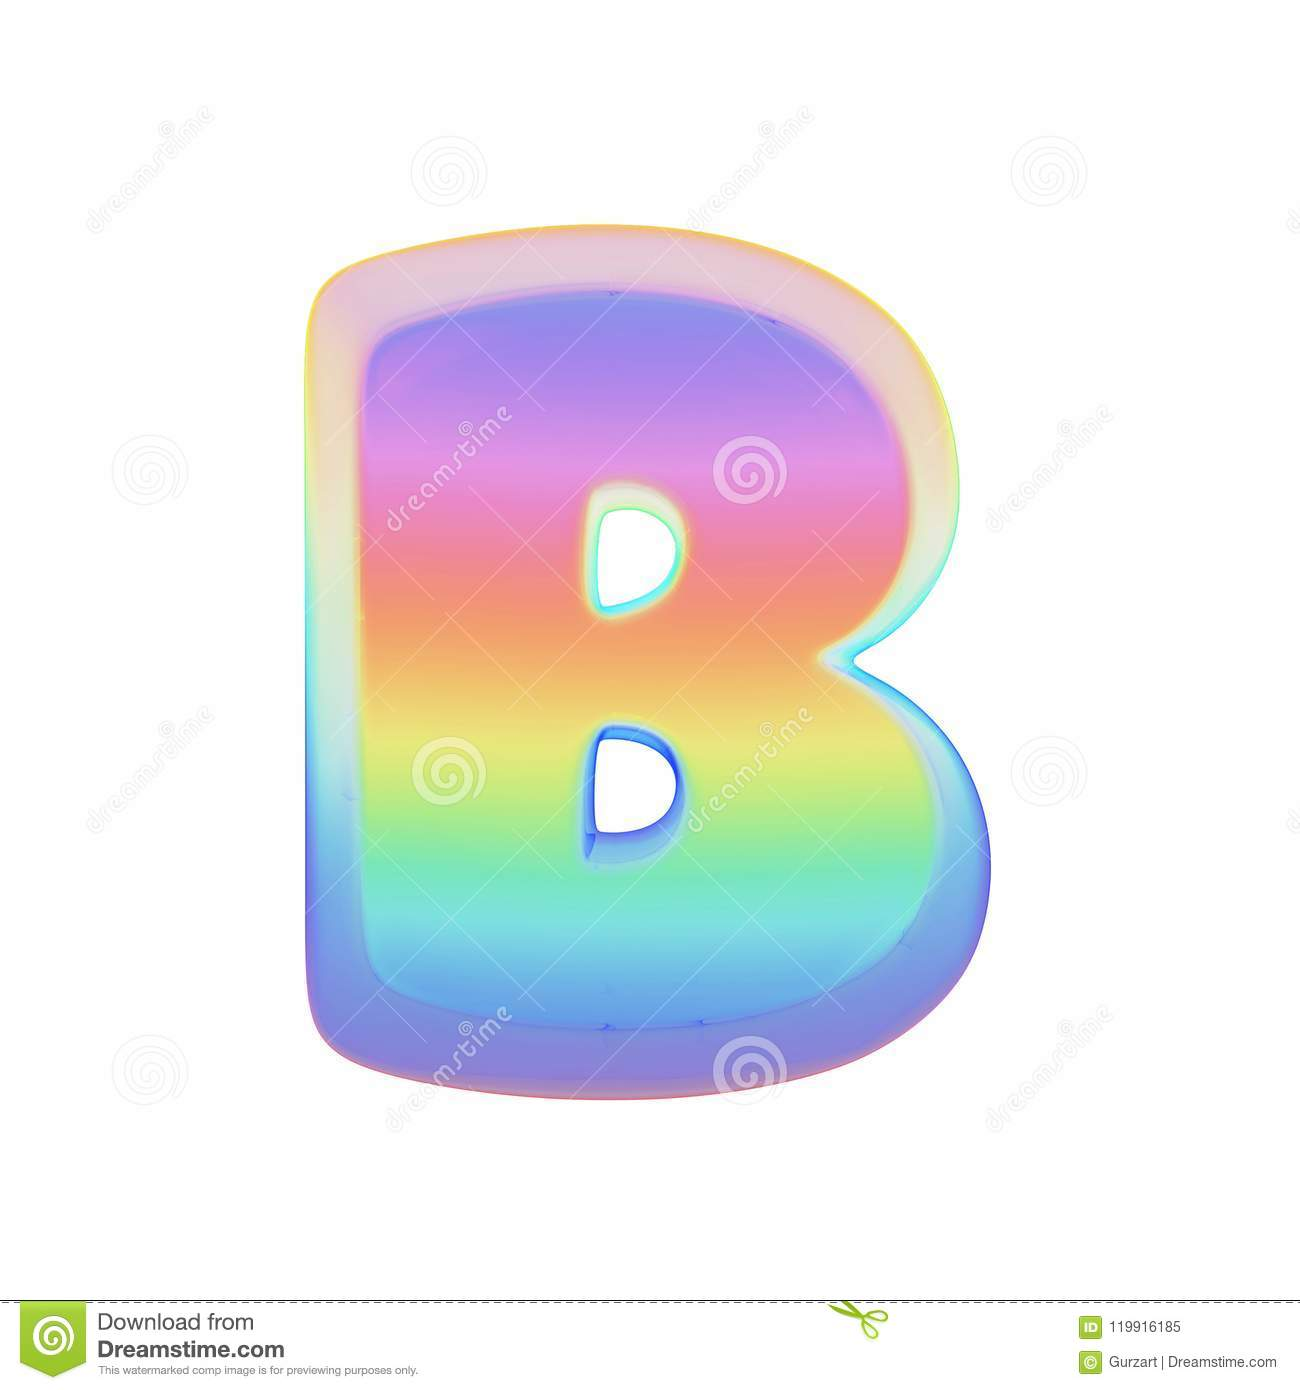 Alphabet Letter B Uppercase Rainbow Font Made Of Bright Soap Bubble